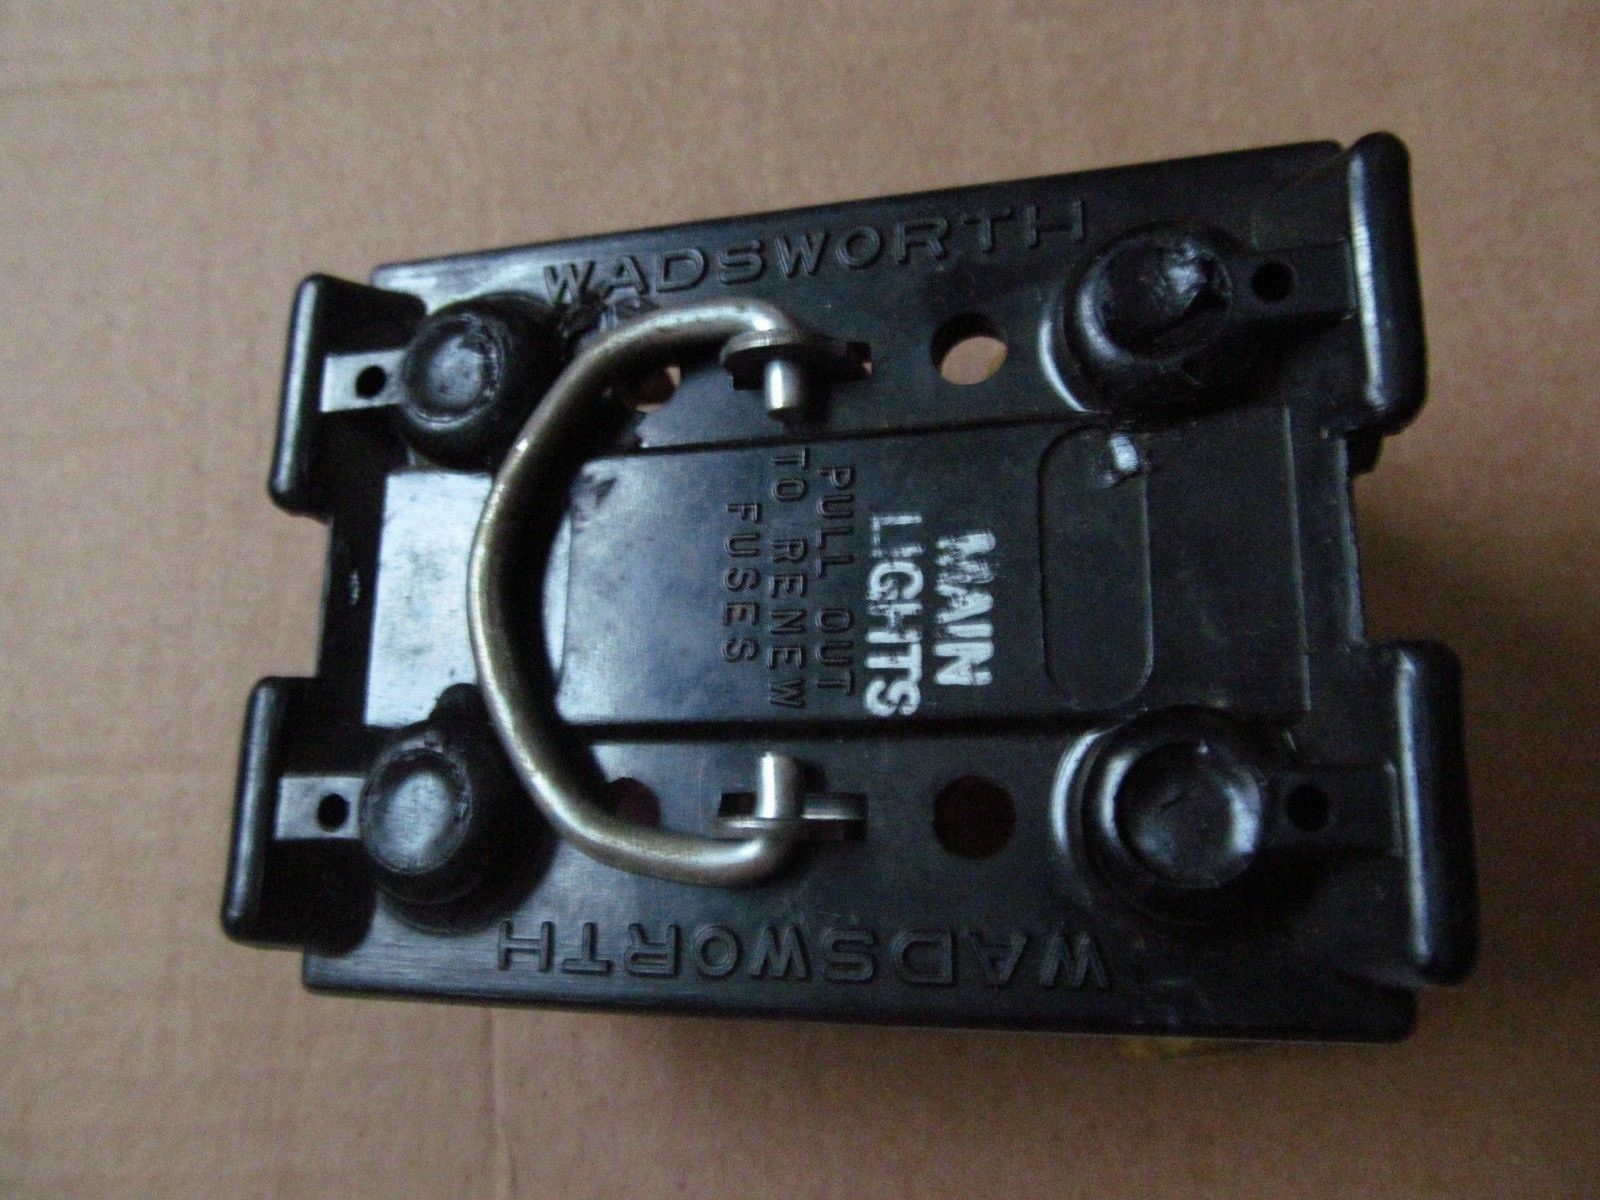 100 Amp Wadsworth Fuse Box 60 Amp Wadsworth Fuse Holder Pull Out Free 60a Amp 30a